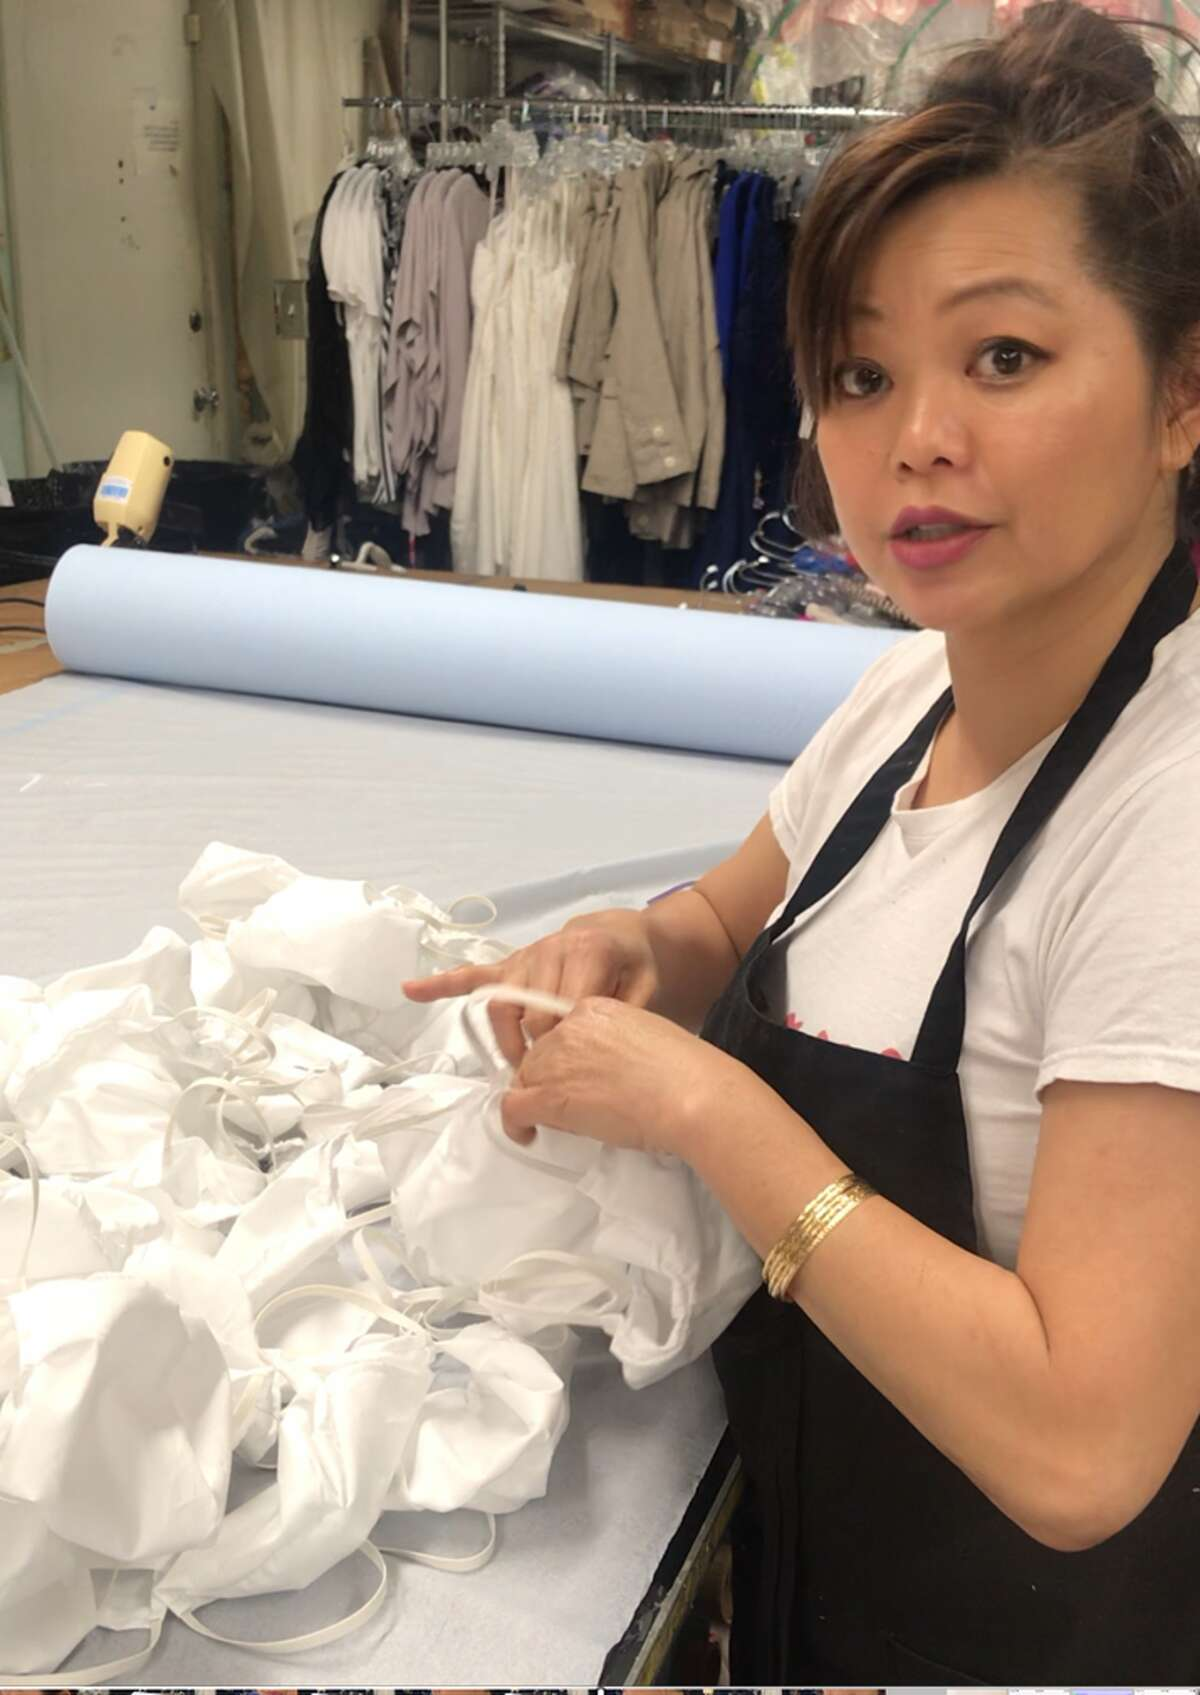 Dao said she's making as many as 150 masks a day now.